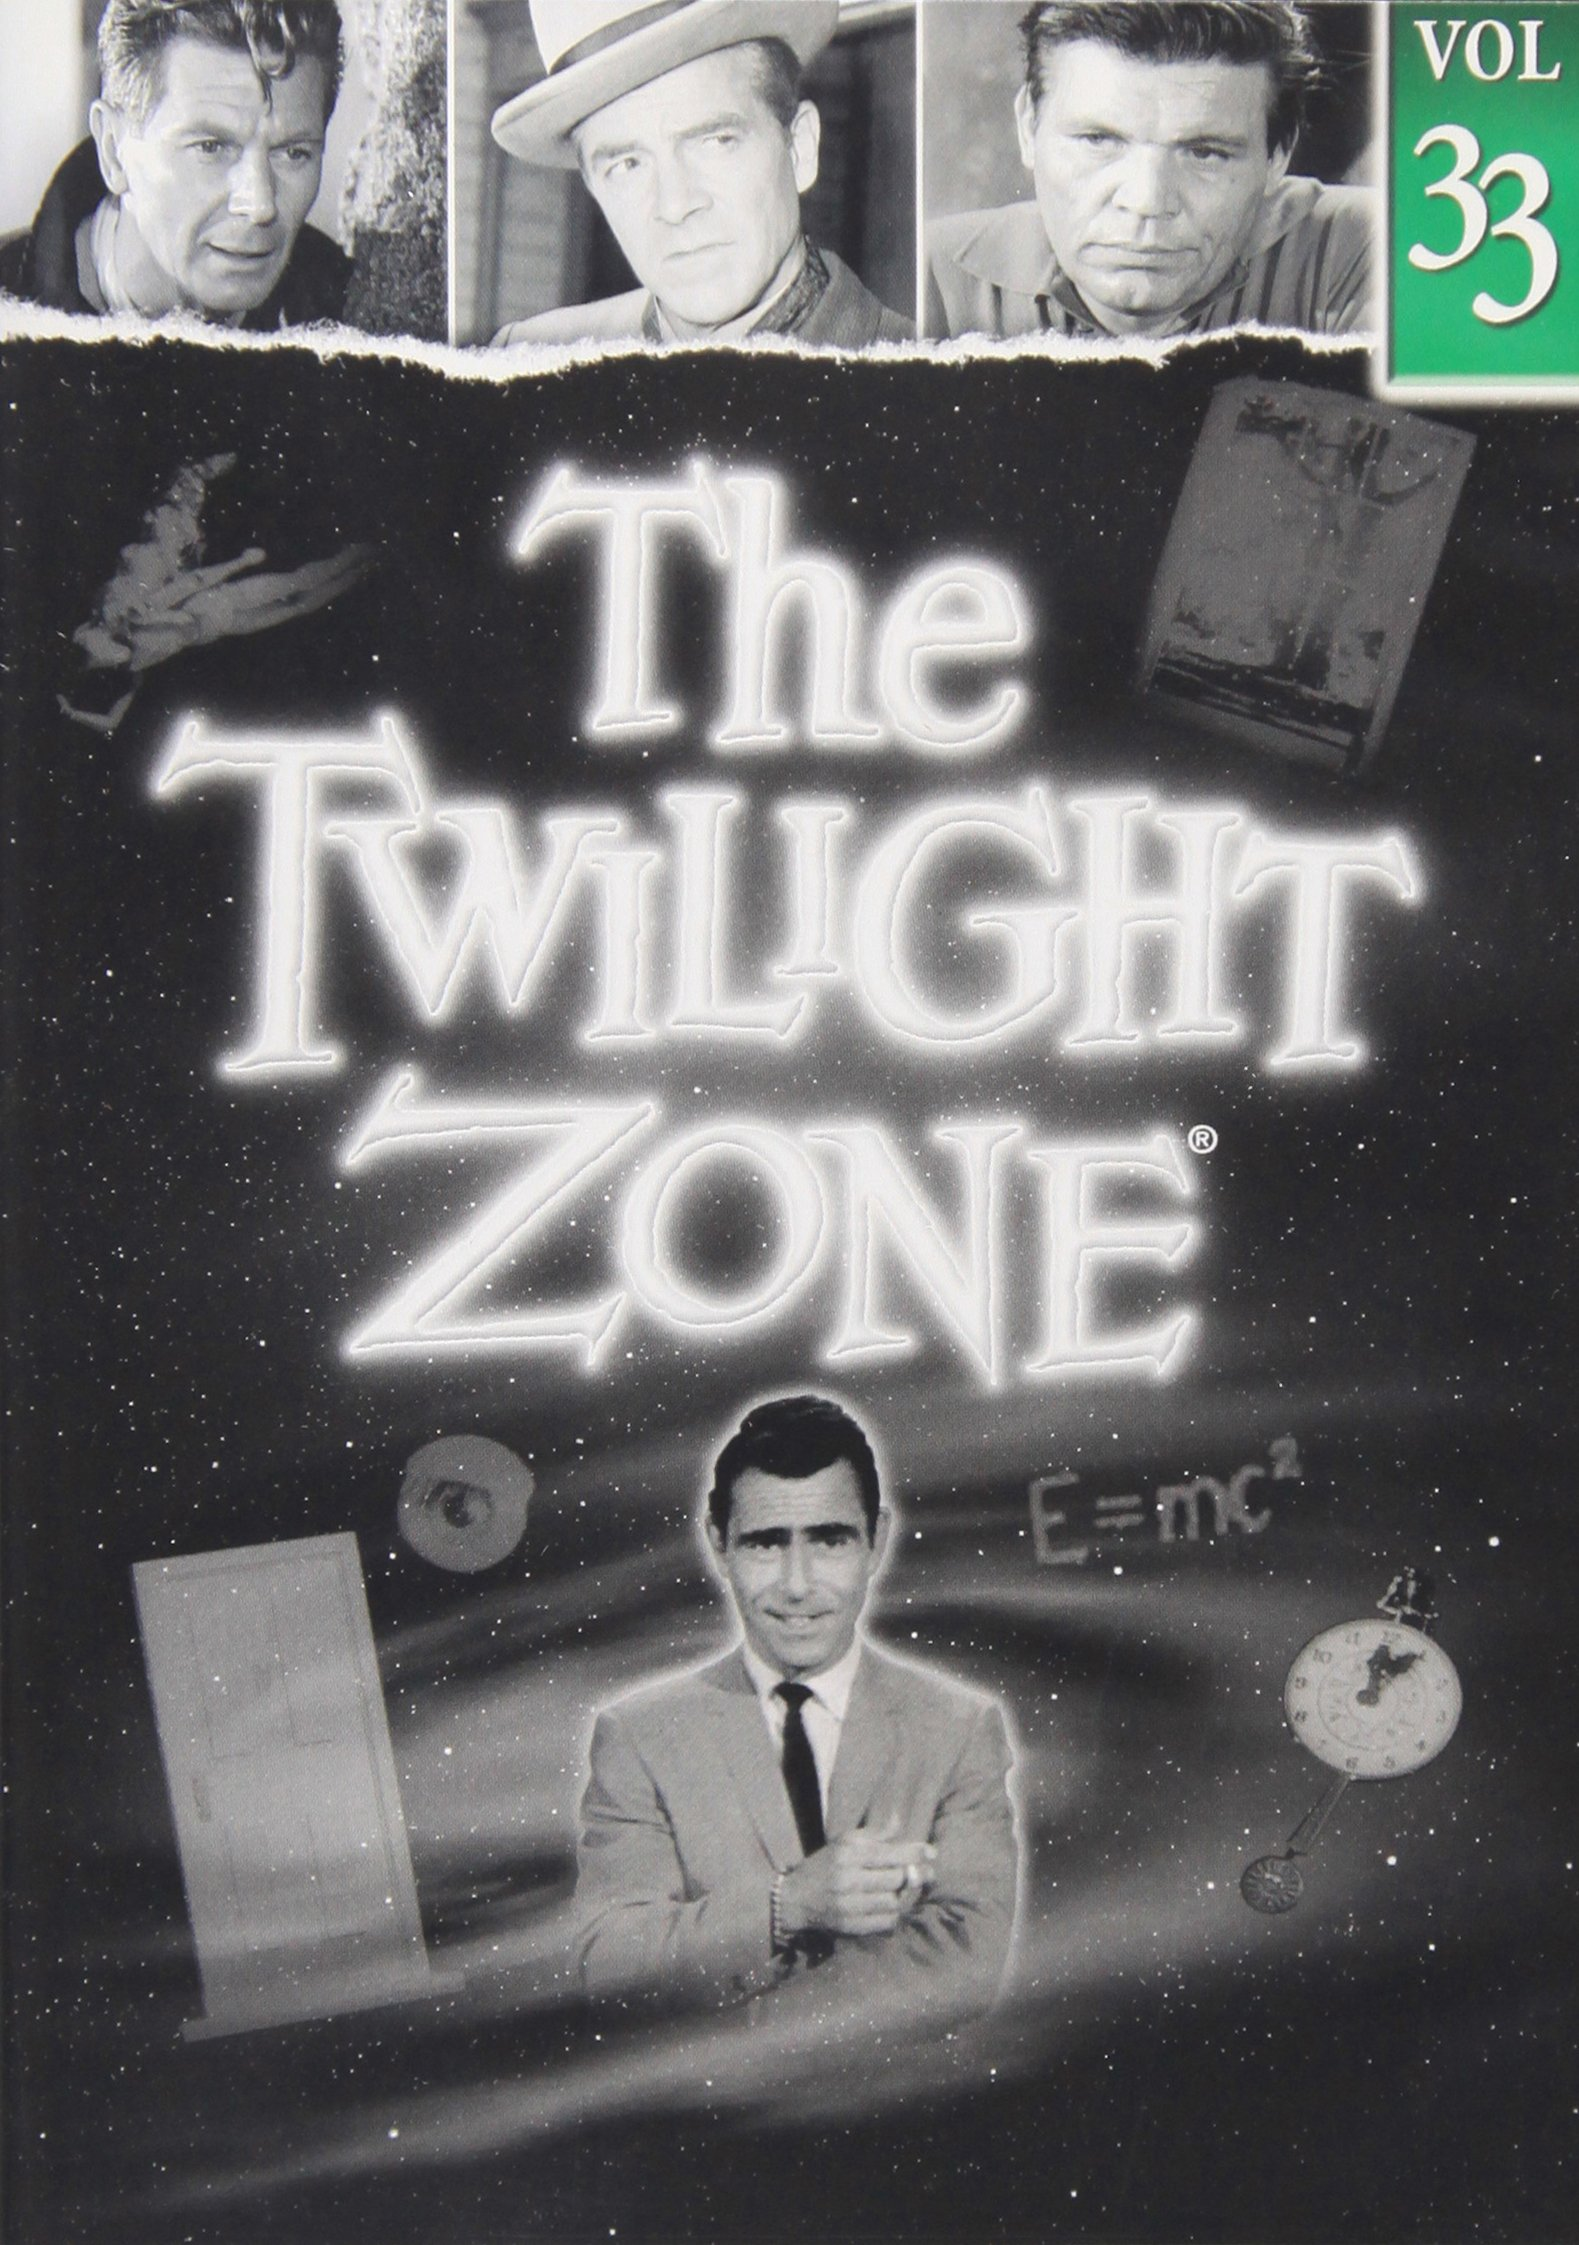 The Twilight Zone - Vol. 33